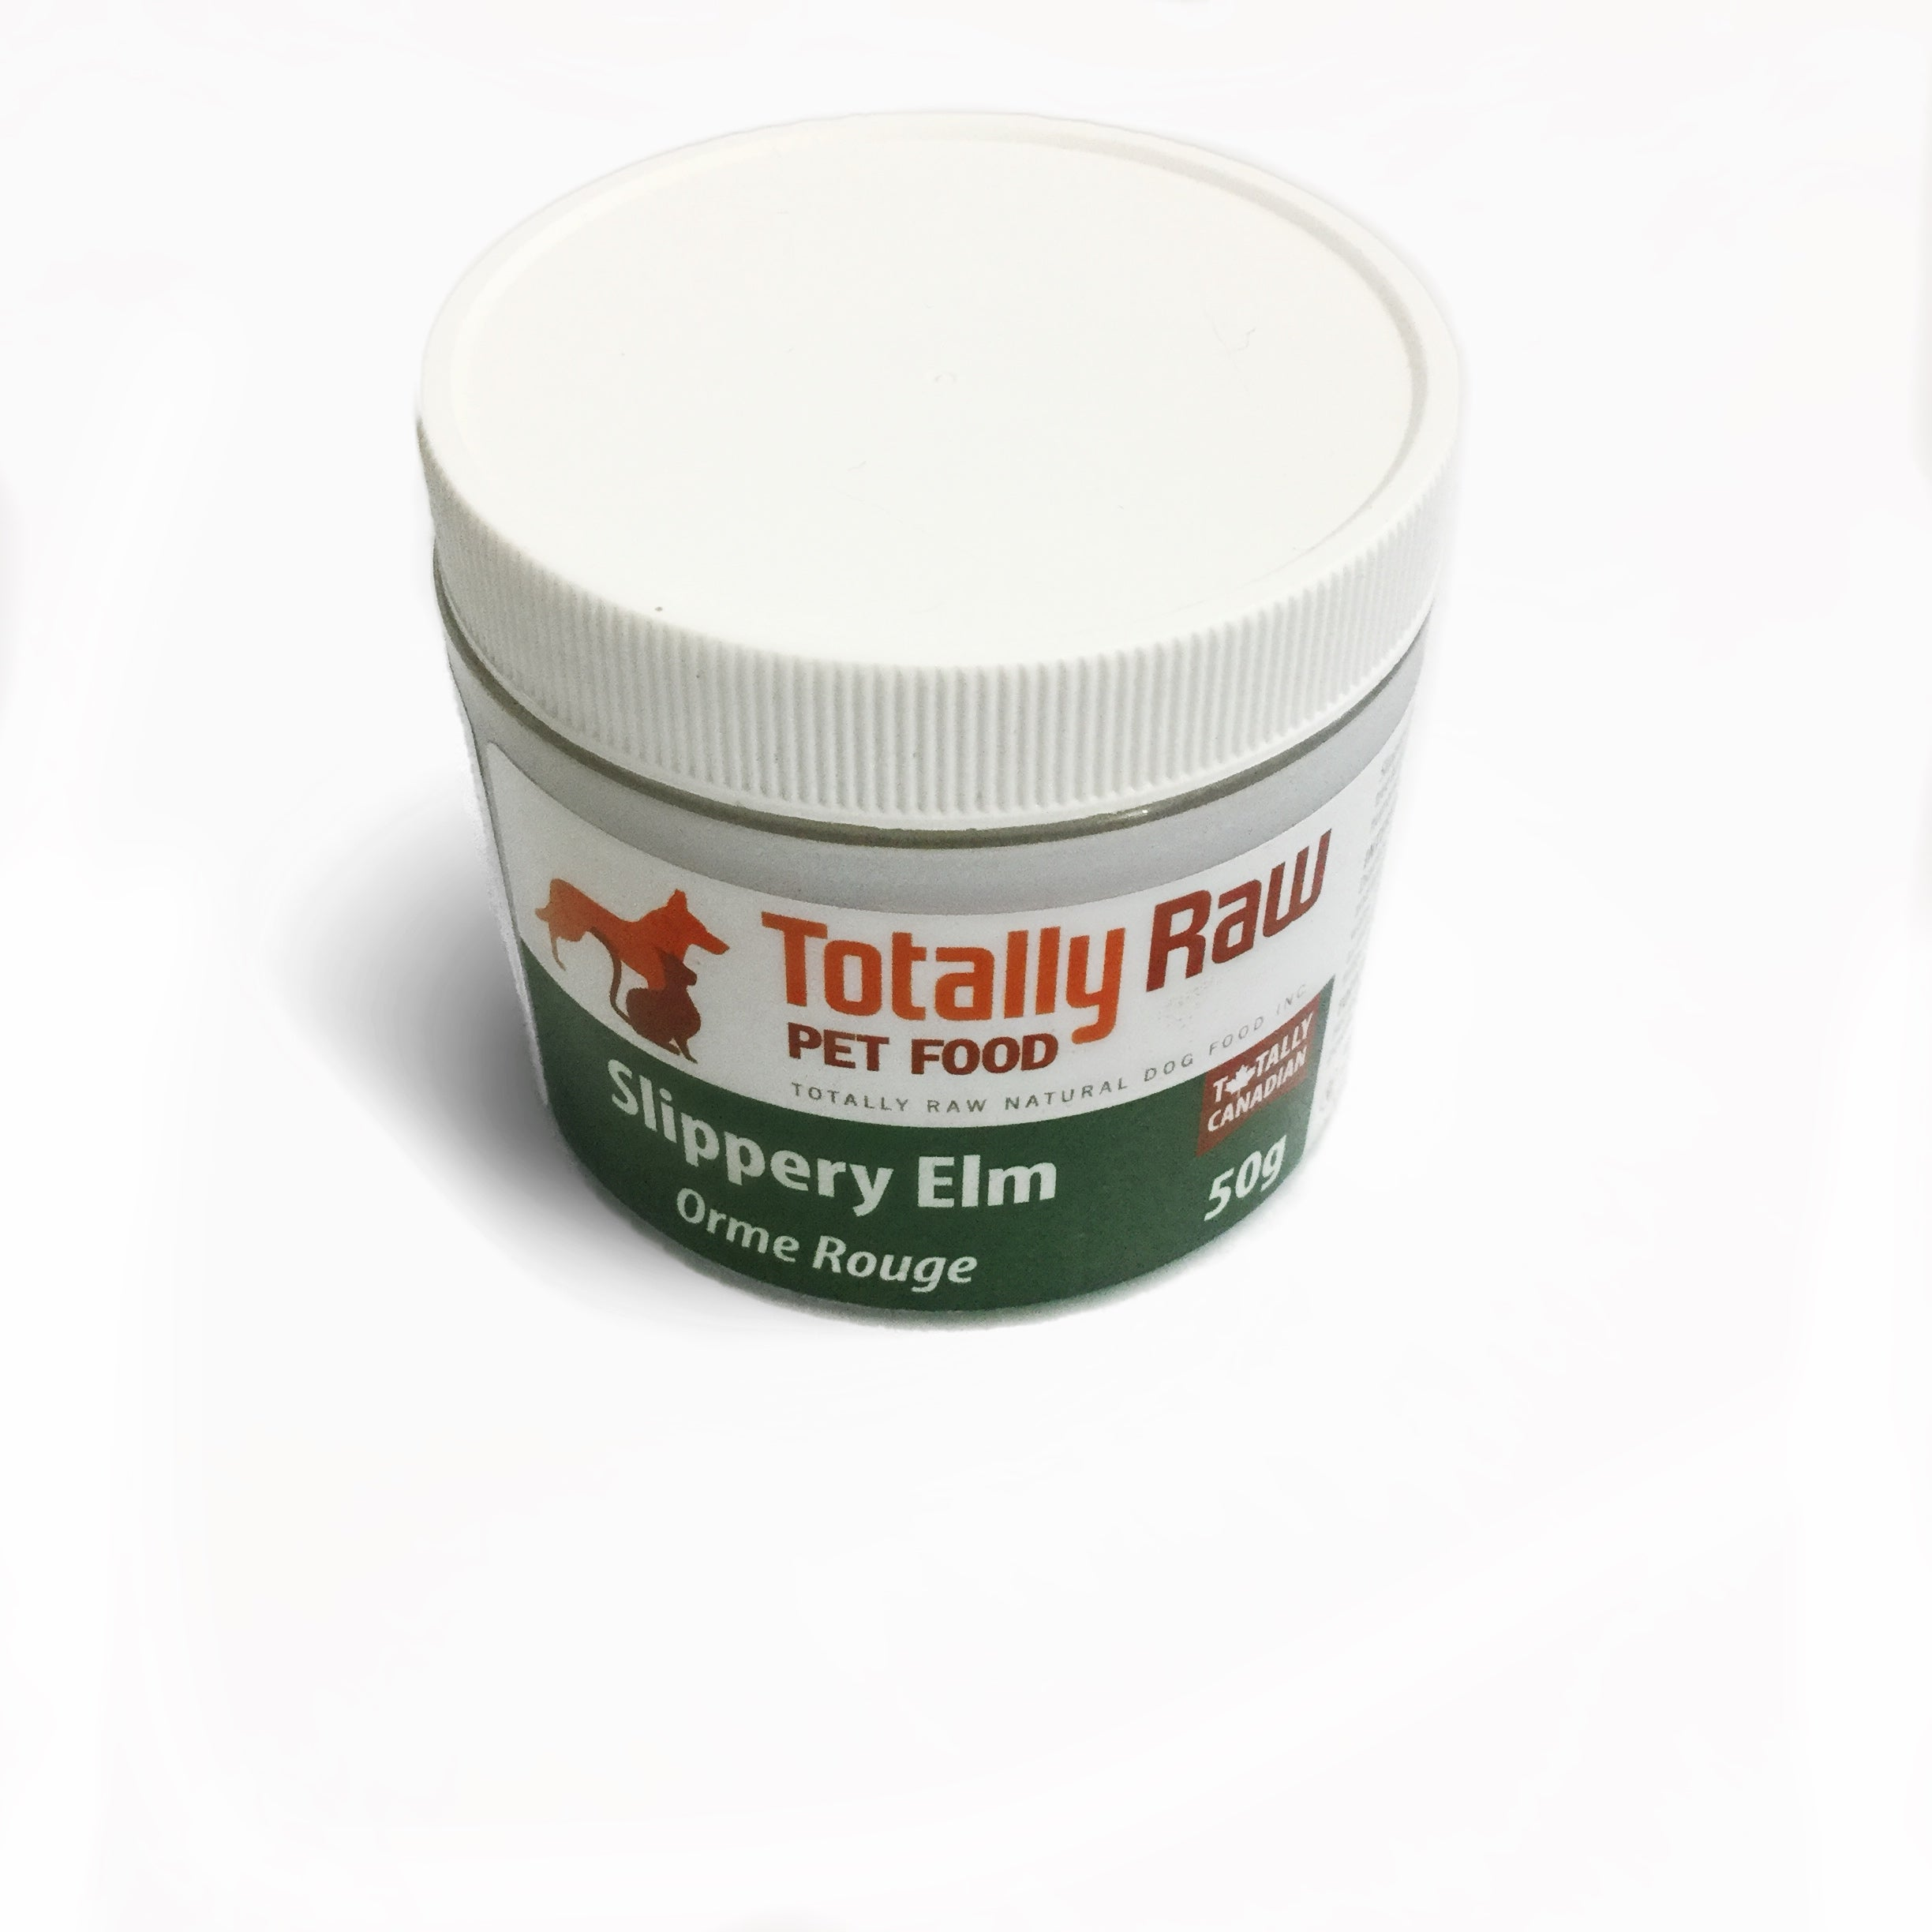 Totally Raw - Slippery Elm